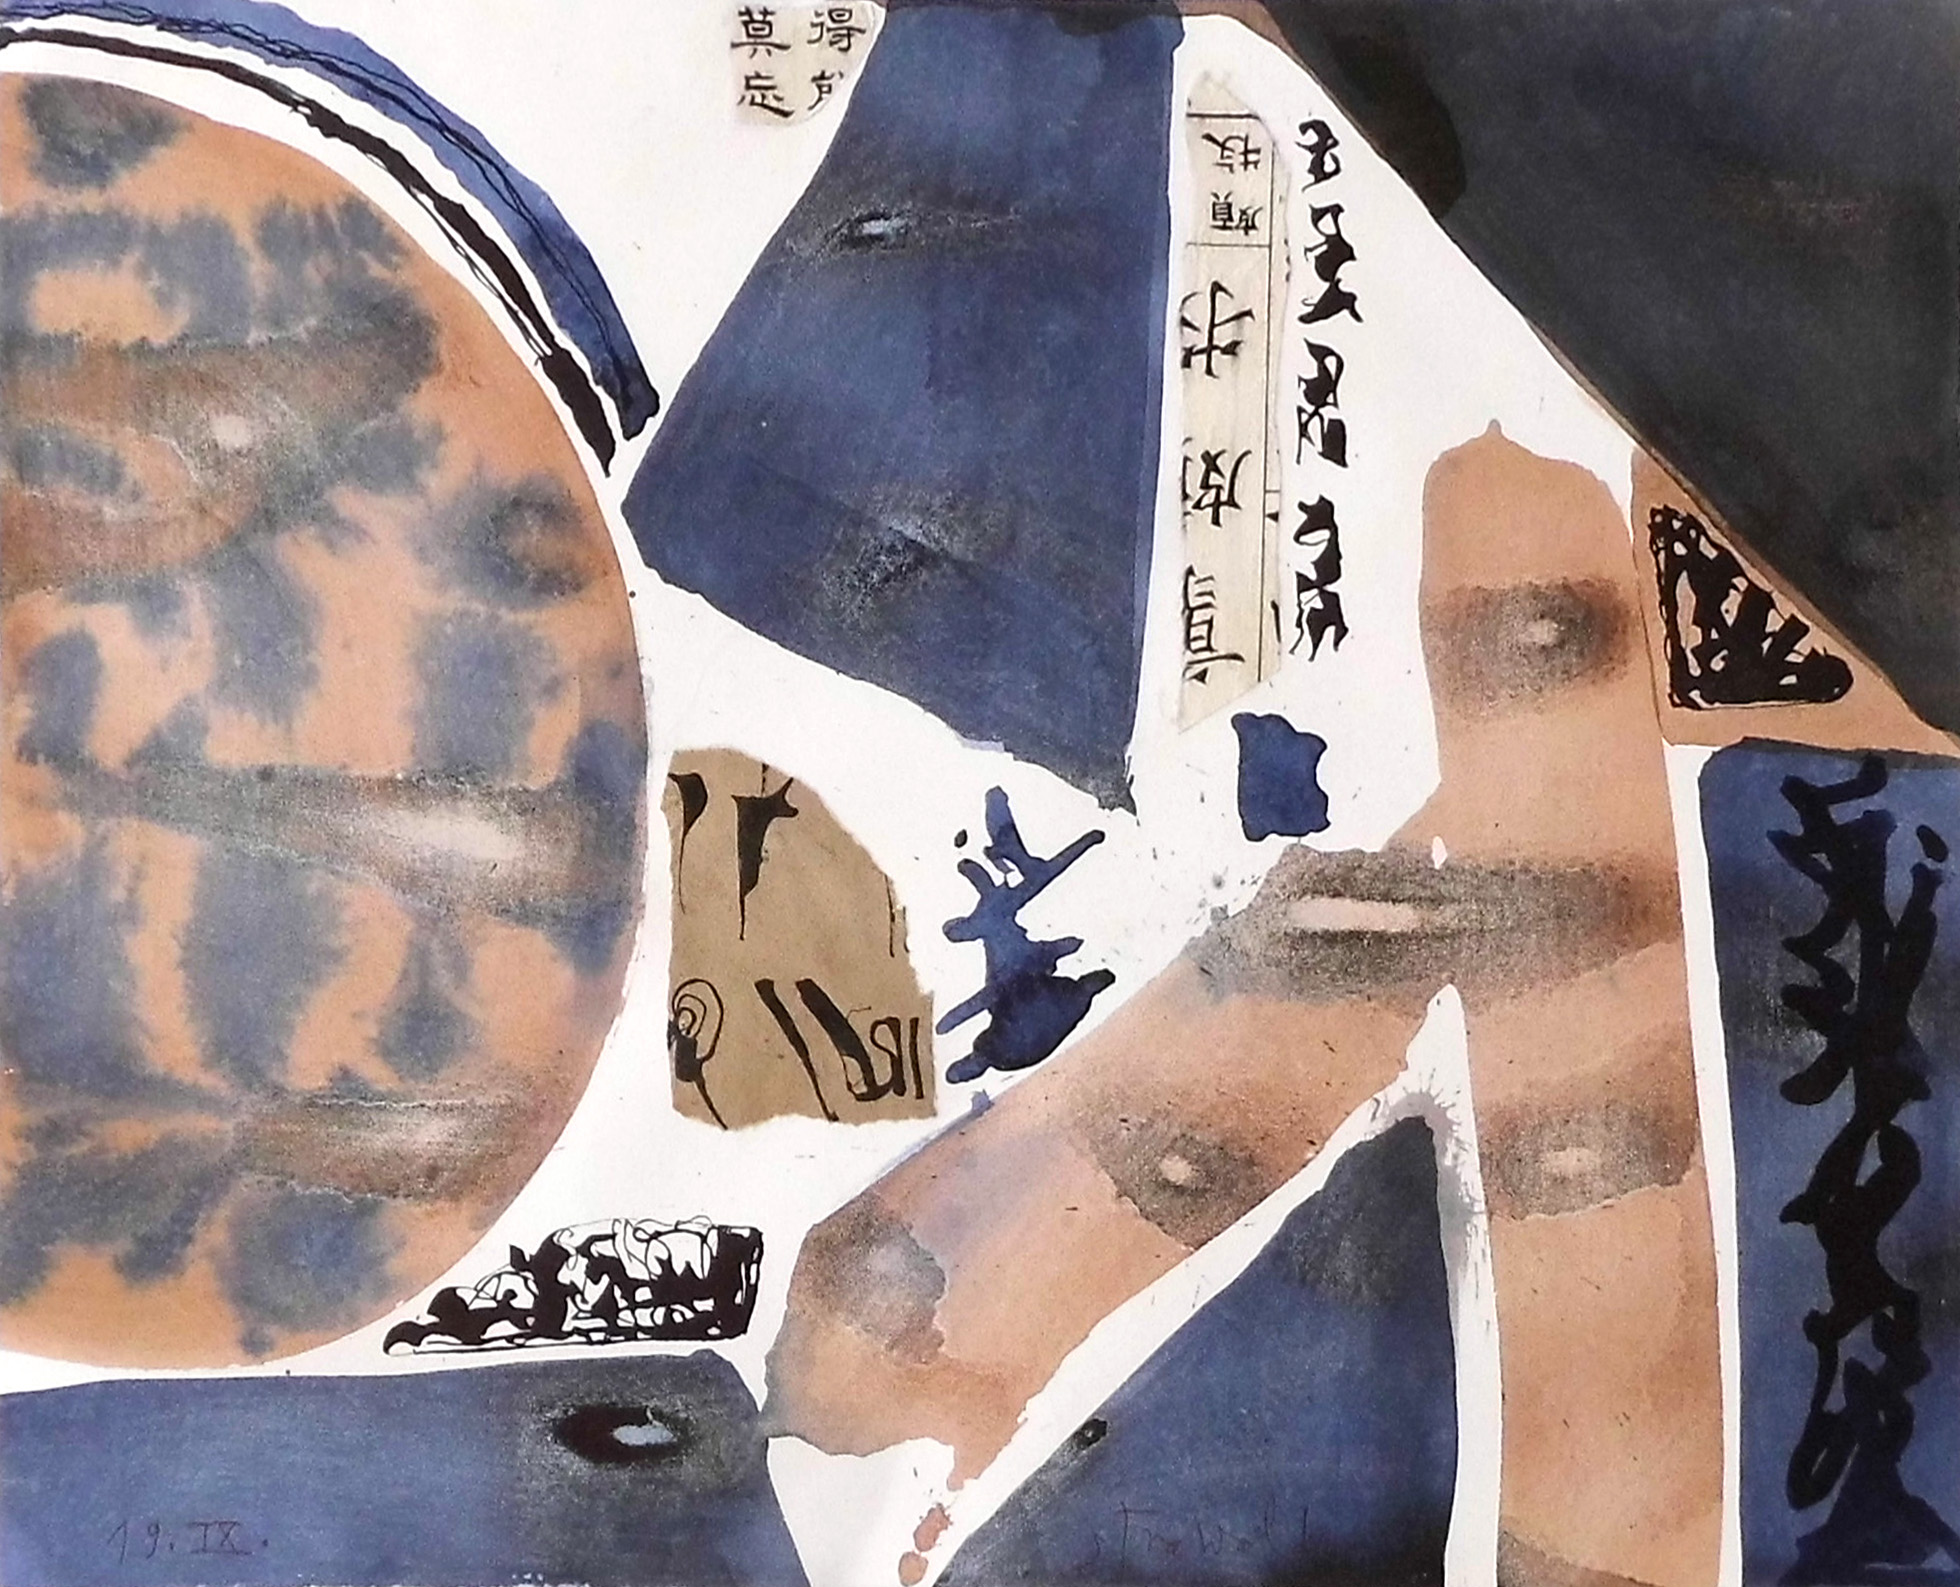 13-Strawalde-Kyoto Collage-2013-Mixed Media-46x61